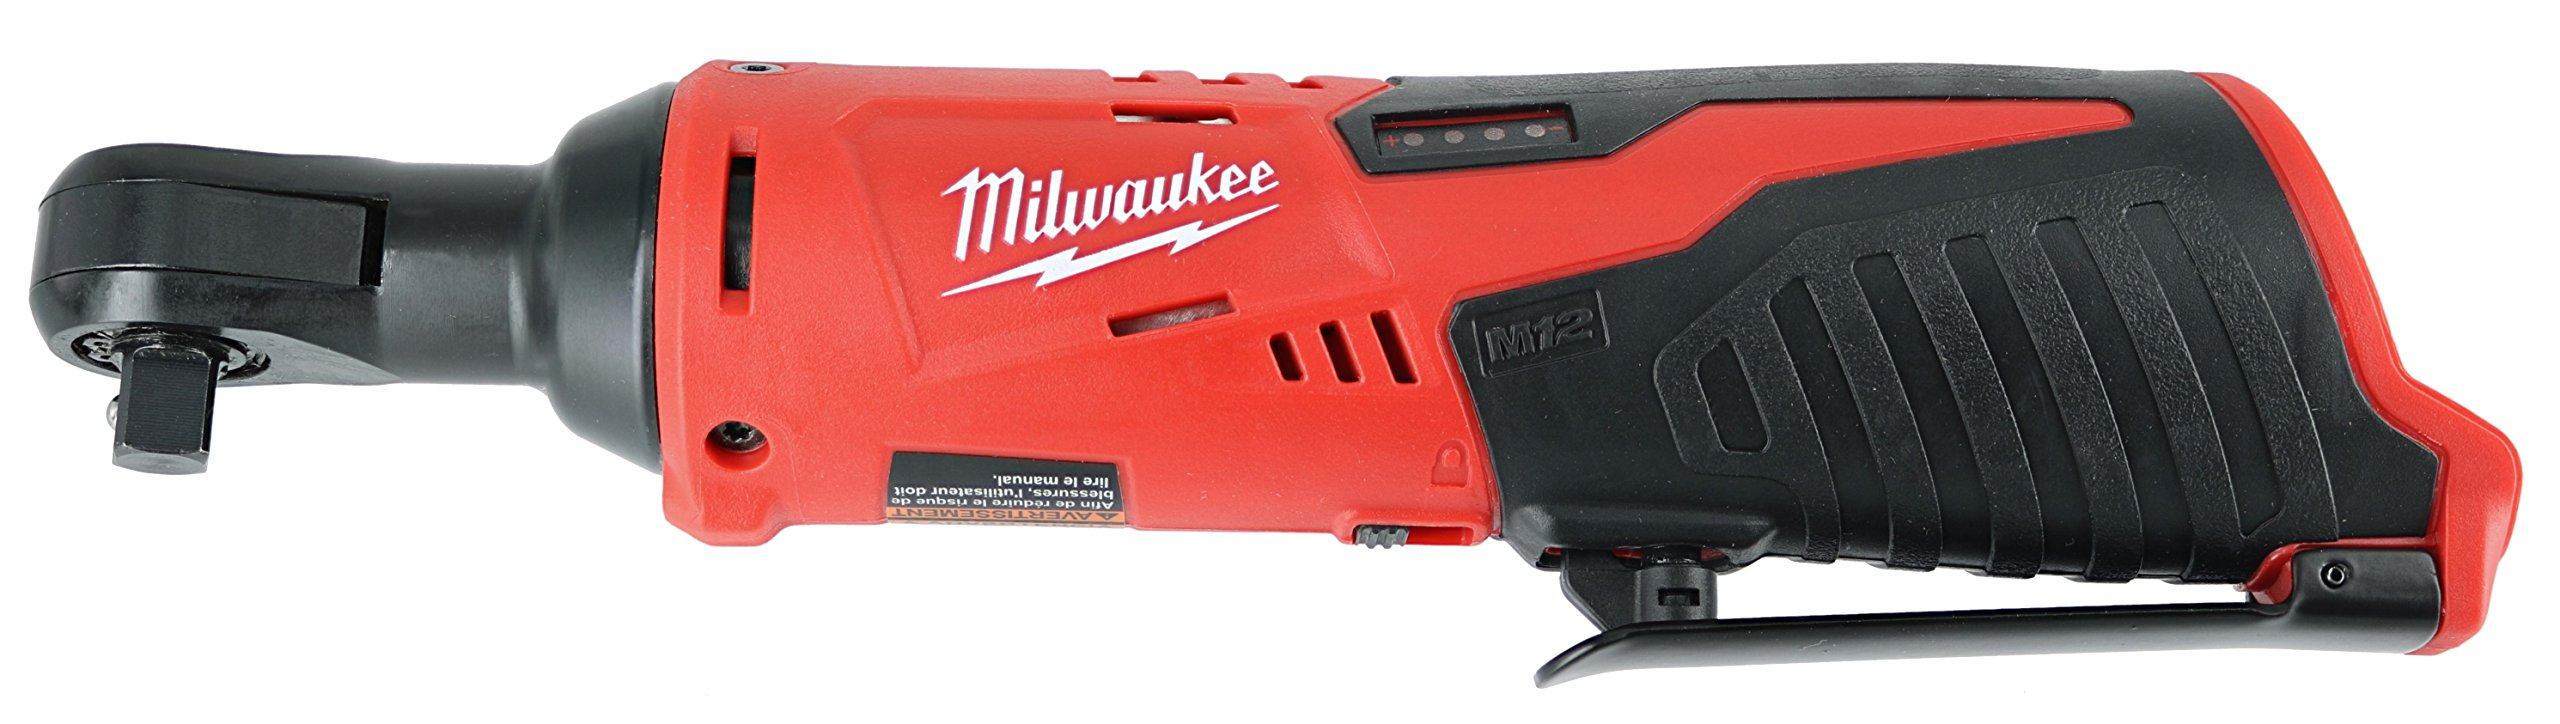 Milwaukee 2457-20 M12 Cordless 3/8'' Sub-Compact 35 ft-Lbs 250 RPM Ratchet w/ Variable Speed Trigger (Battery Not Included, Power Tool Only)